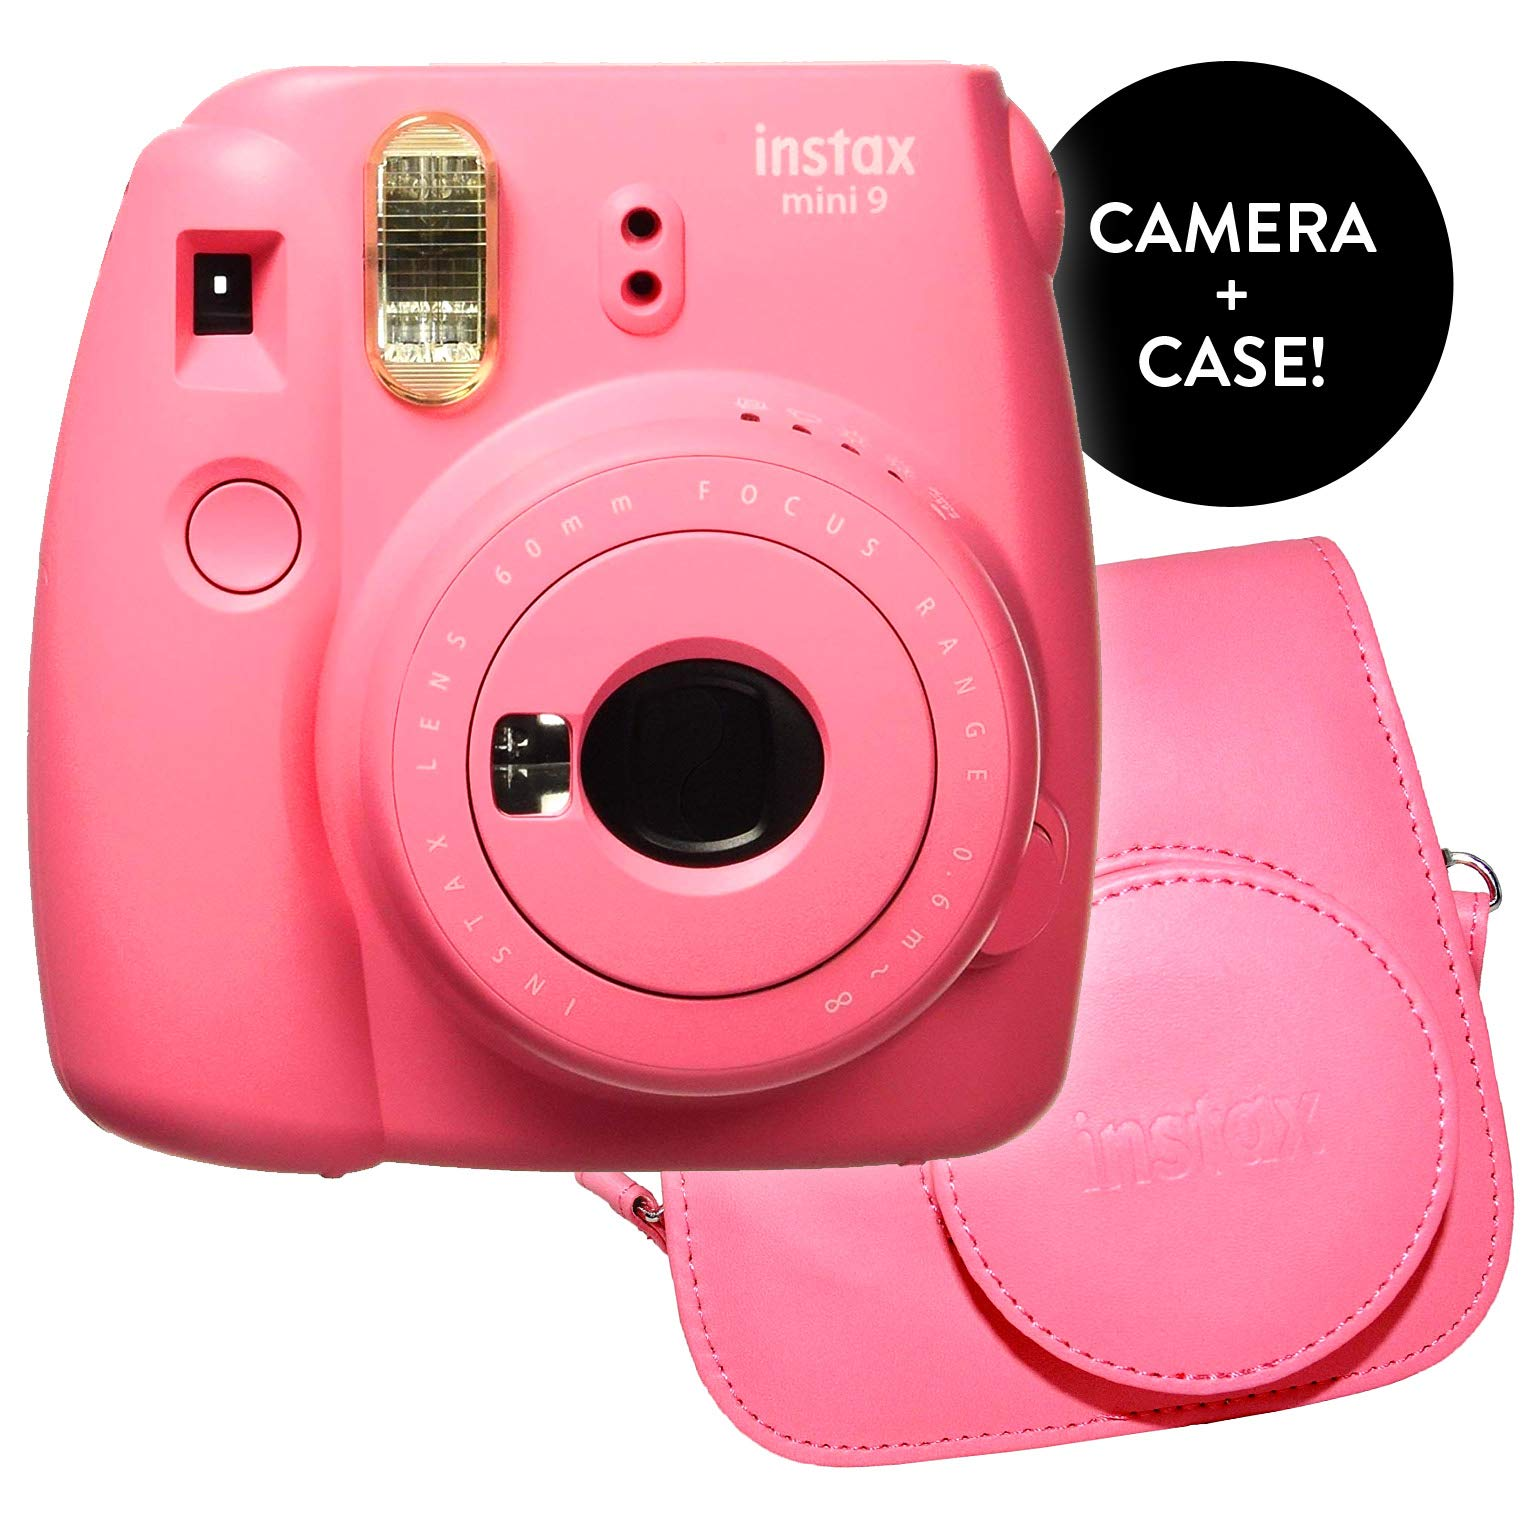 Fujifilm Instax Mini 9 Instant Print Camera - Certified Refurbished Bundle with New Instax Mini 9 Groovy Camera Case | Matching Colors for Case and Instax Mini 9 Camera (Flamingo Pink)